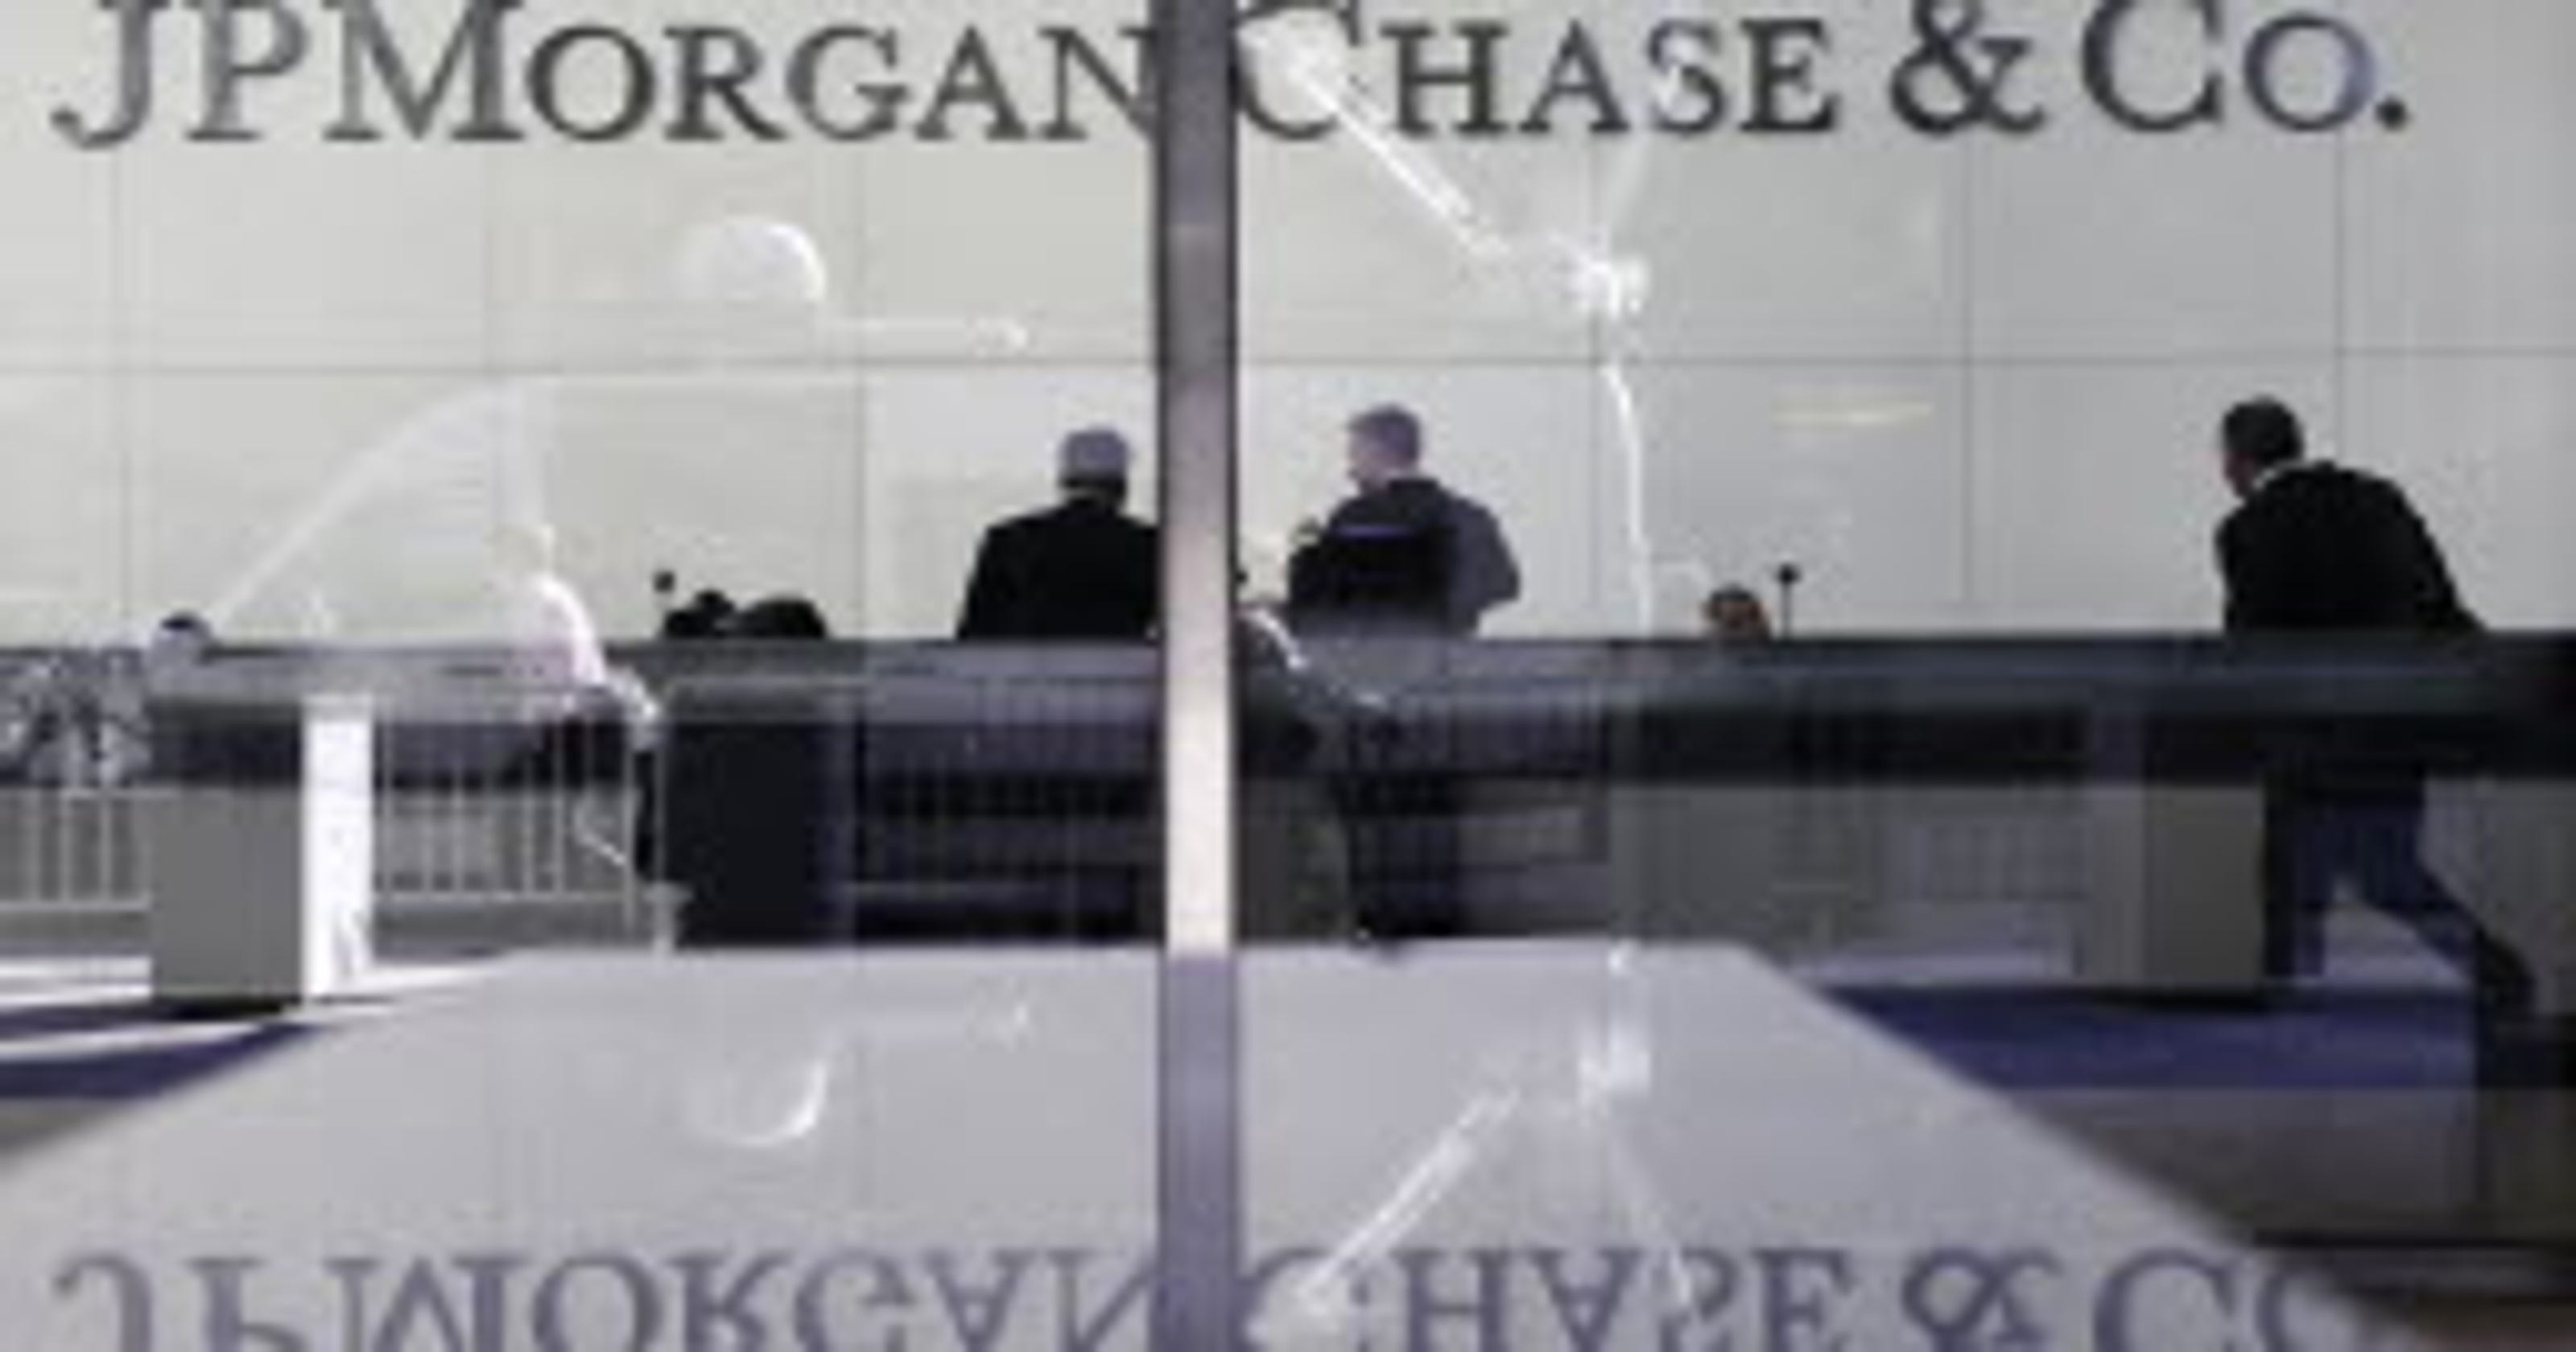 Jpmorgan Fined 920 Million For London Whale Chase Manhattan Bank Wiring Instructions